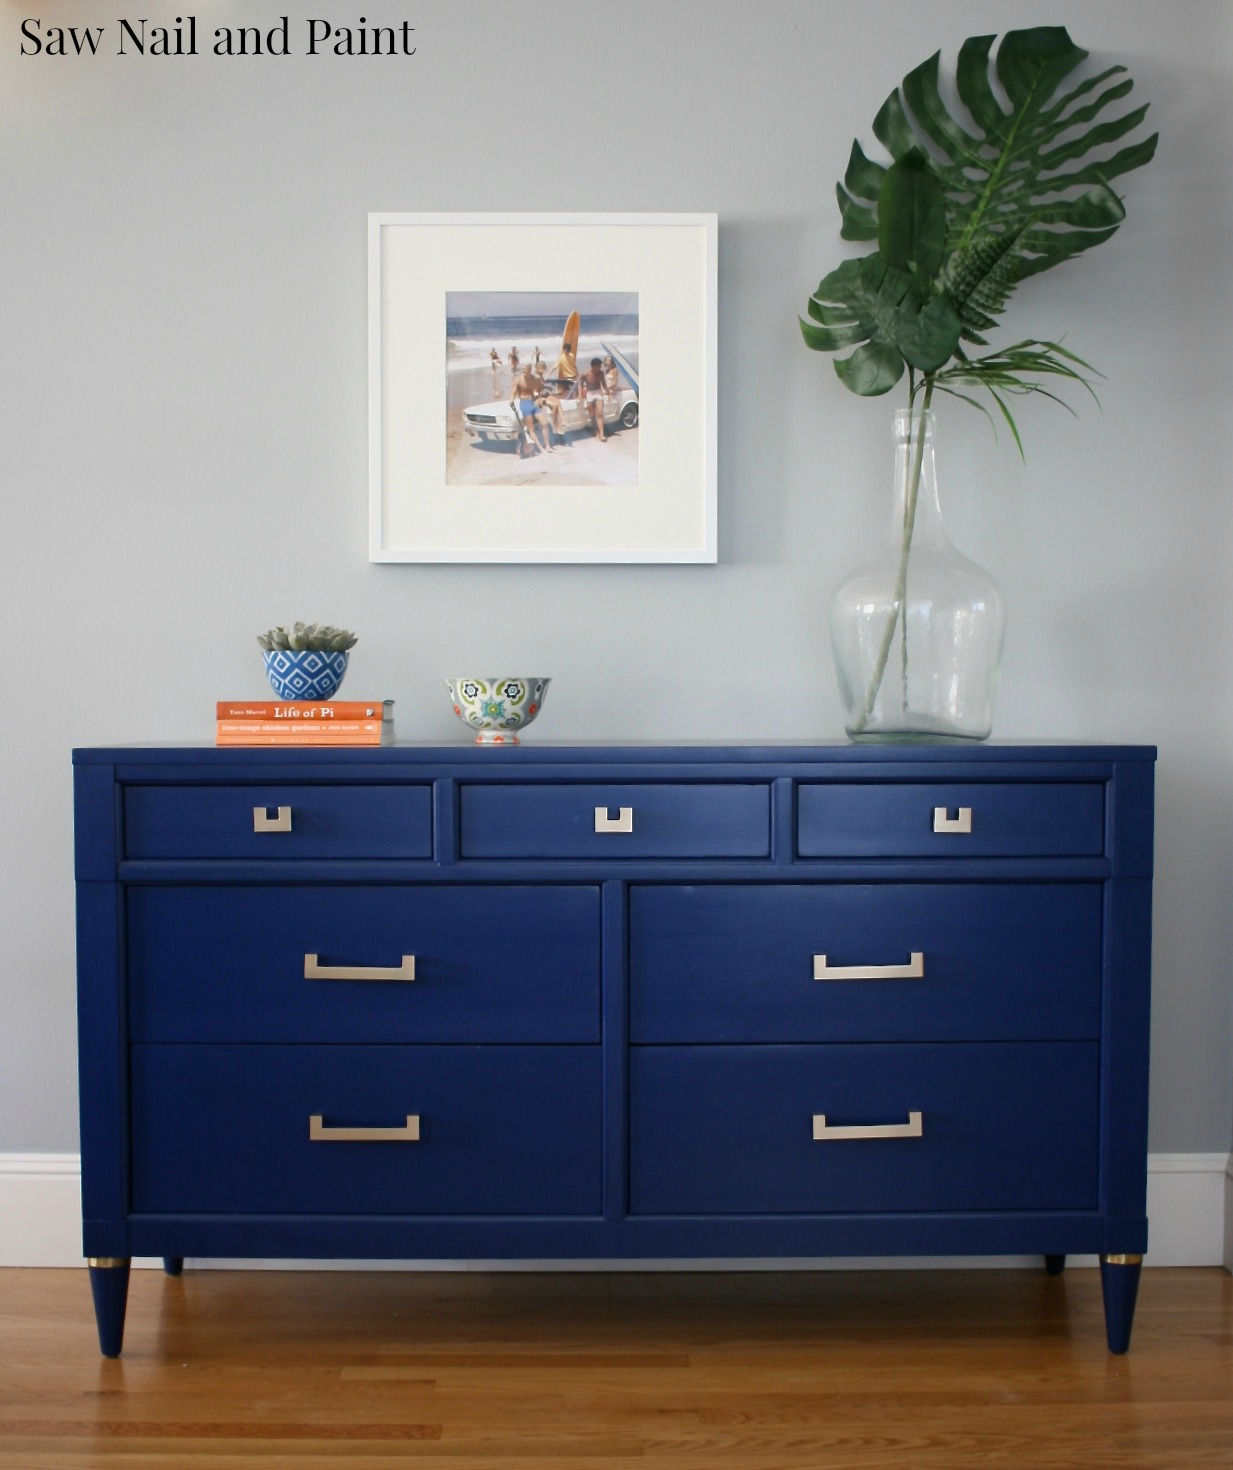 Sapphire Blue Midcentury Dresser Saw Nail And Paint